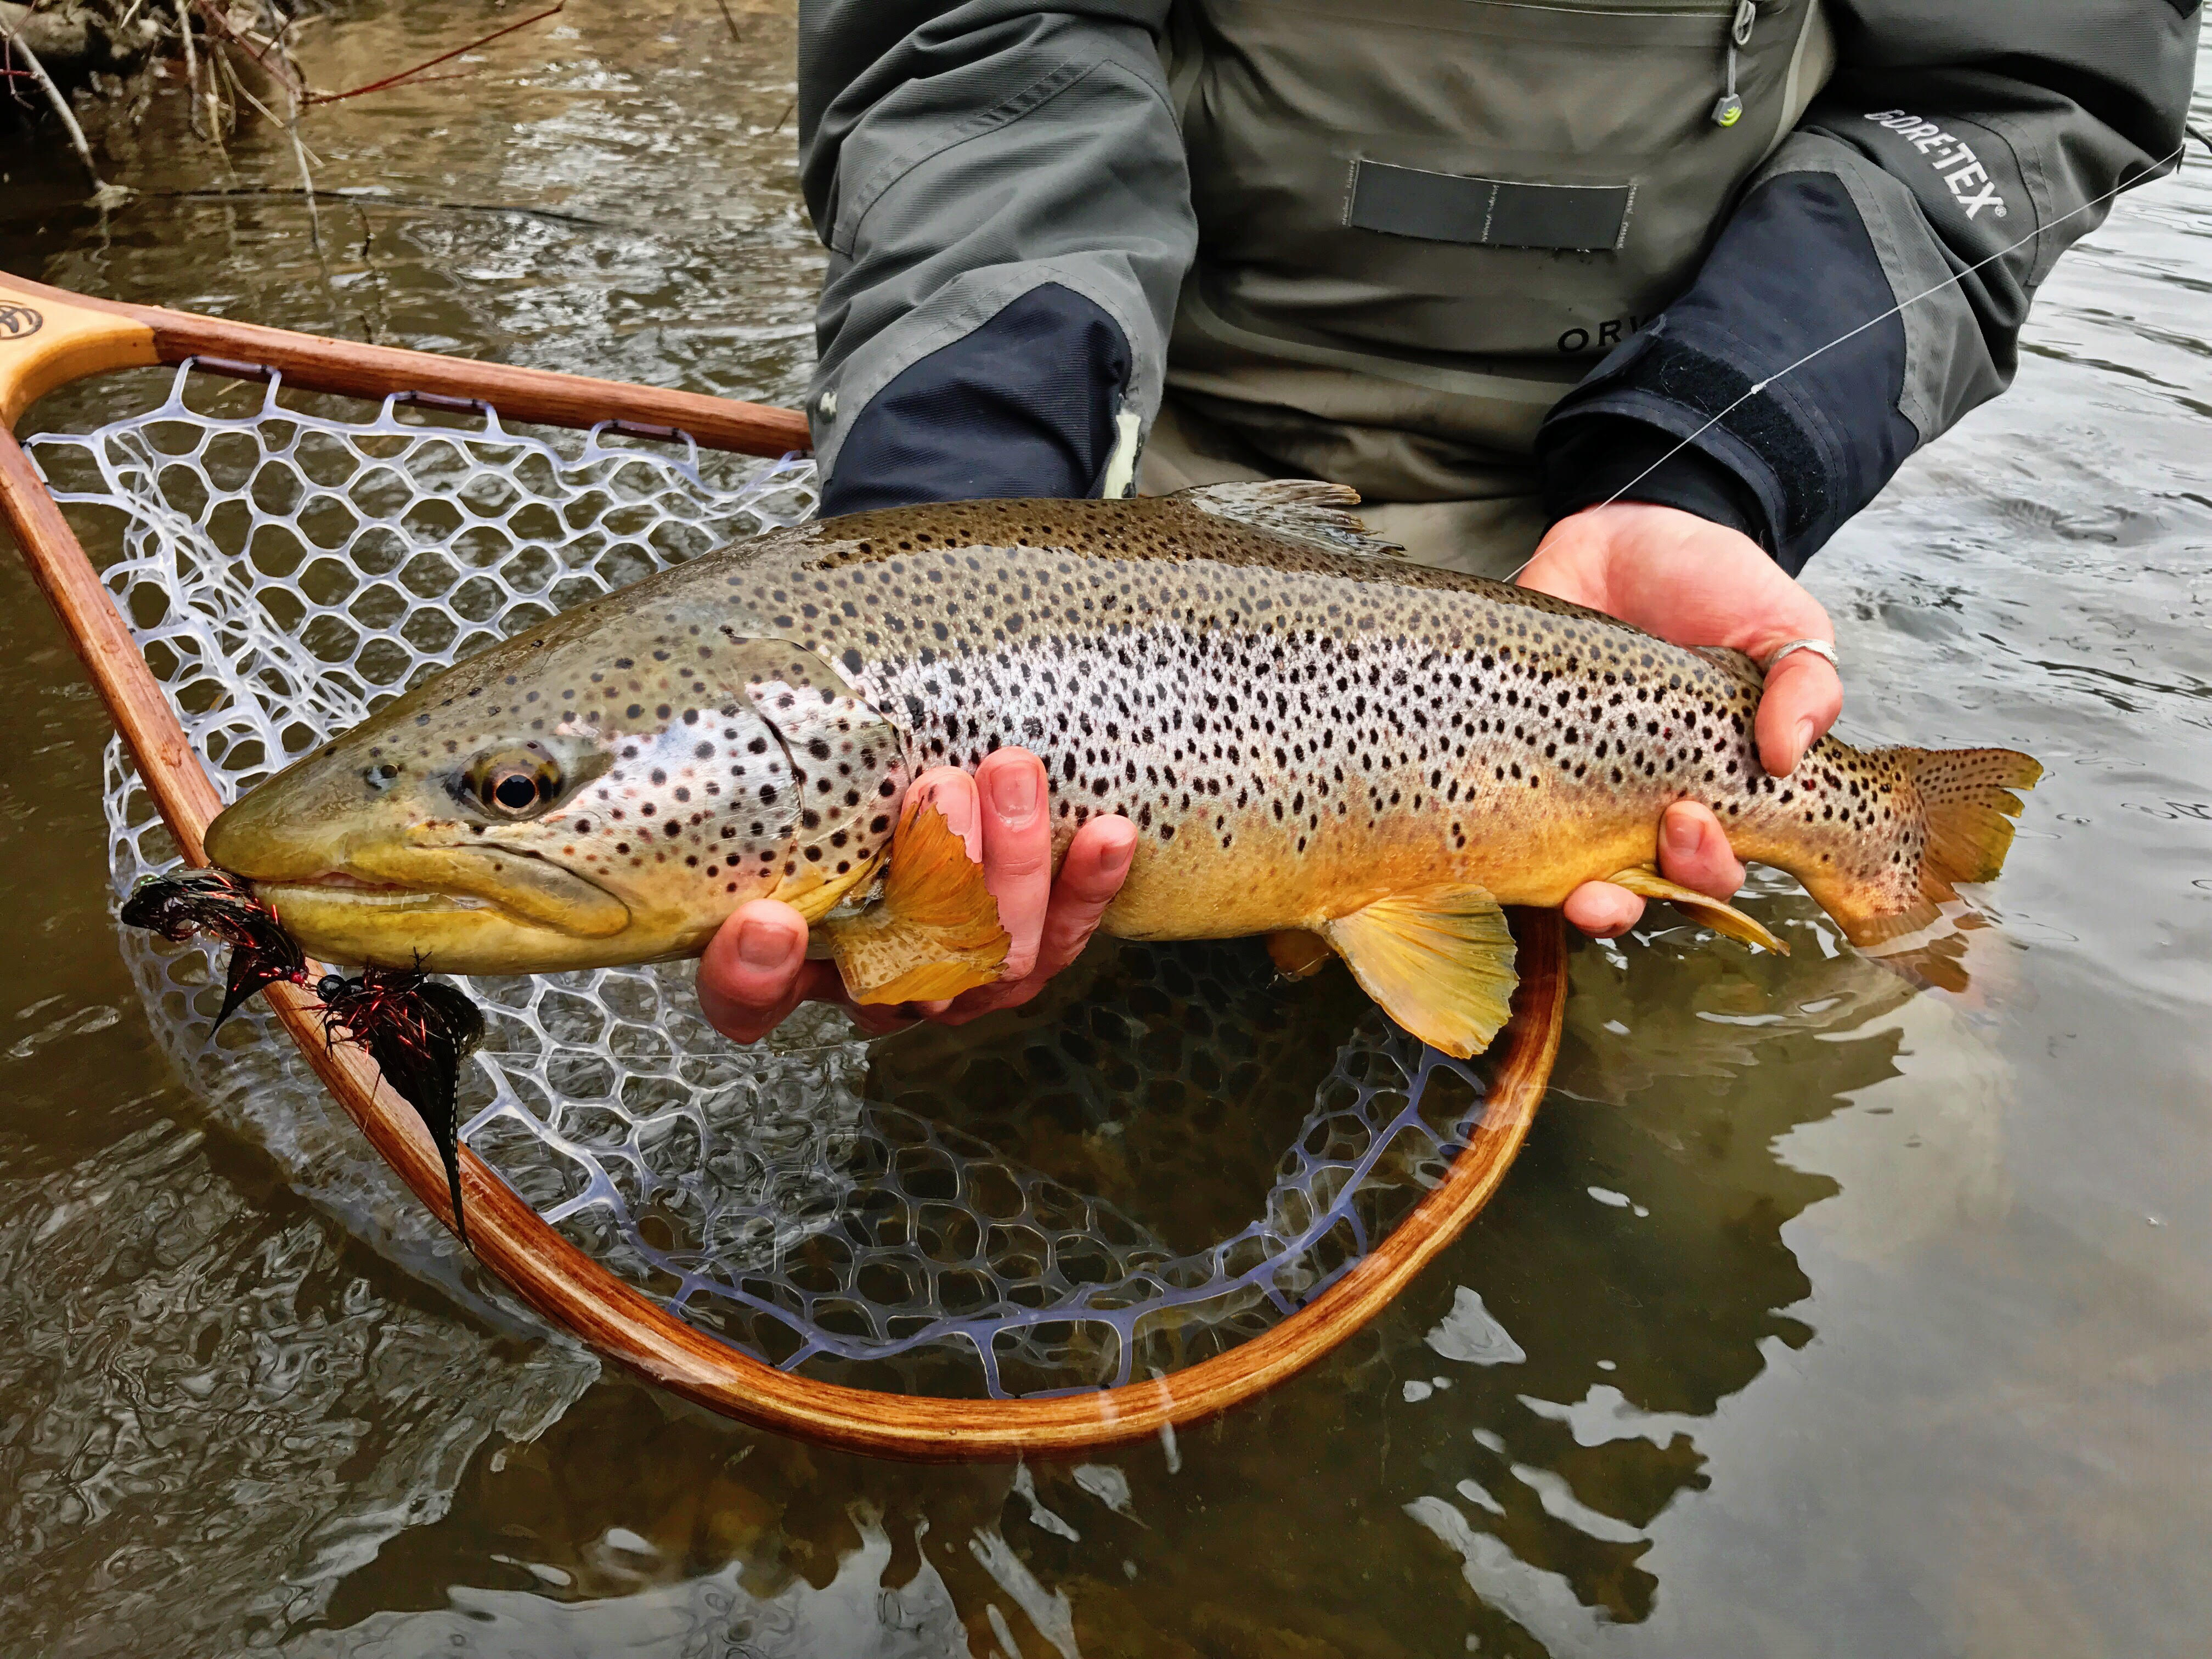 Nick Sagnibene of Ellicottville shows off a brown trout that will be a target on April 1.